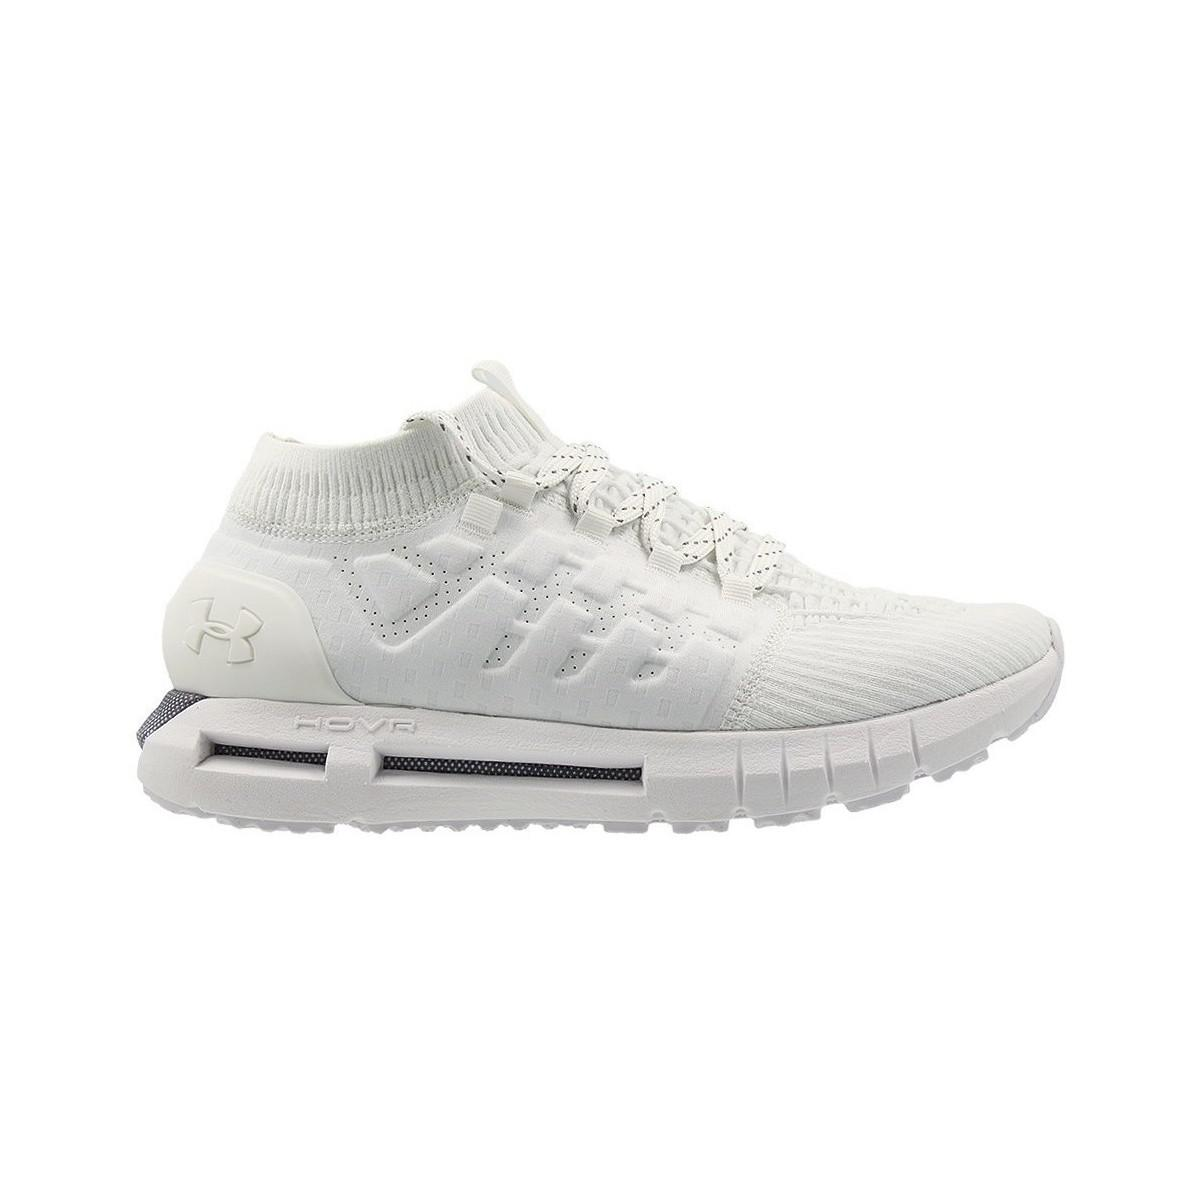 a231e0a2673 Under Armour Hovr Phantom Men's Shoes (high-top Trainers) In White ...